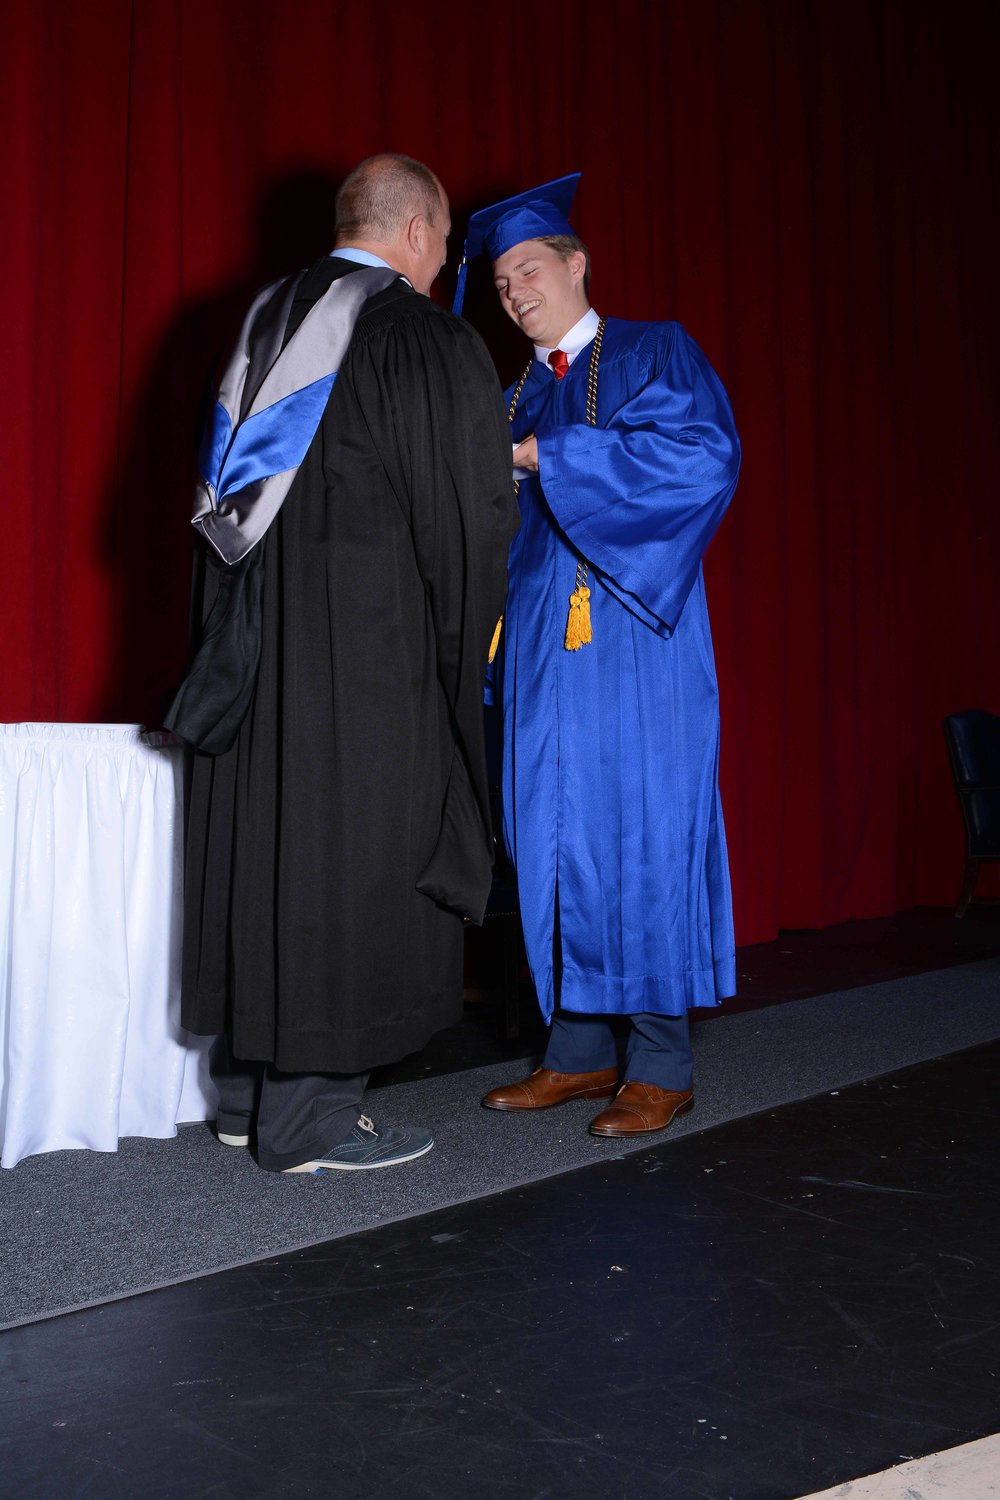 May14 Commencement181.jpg